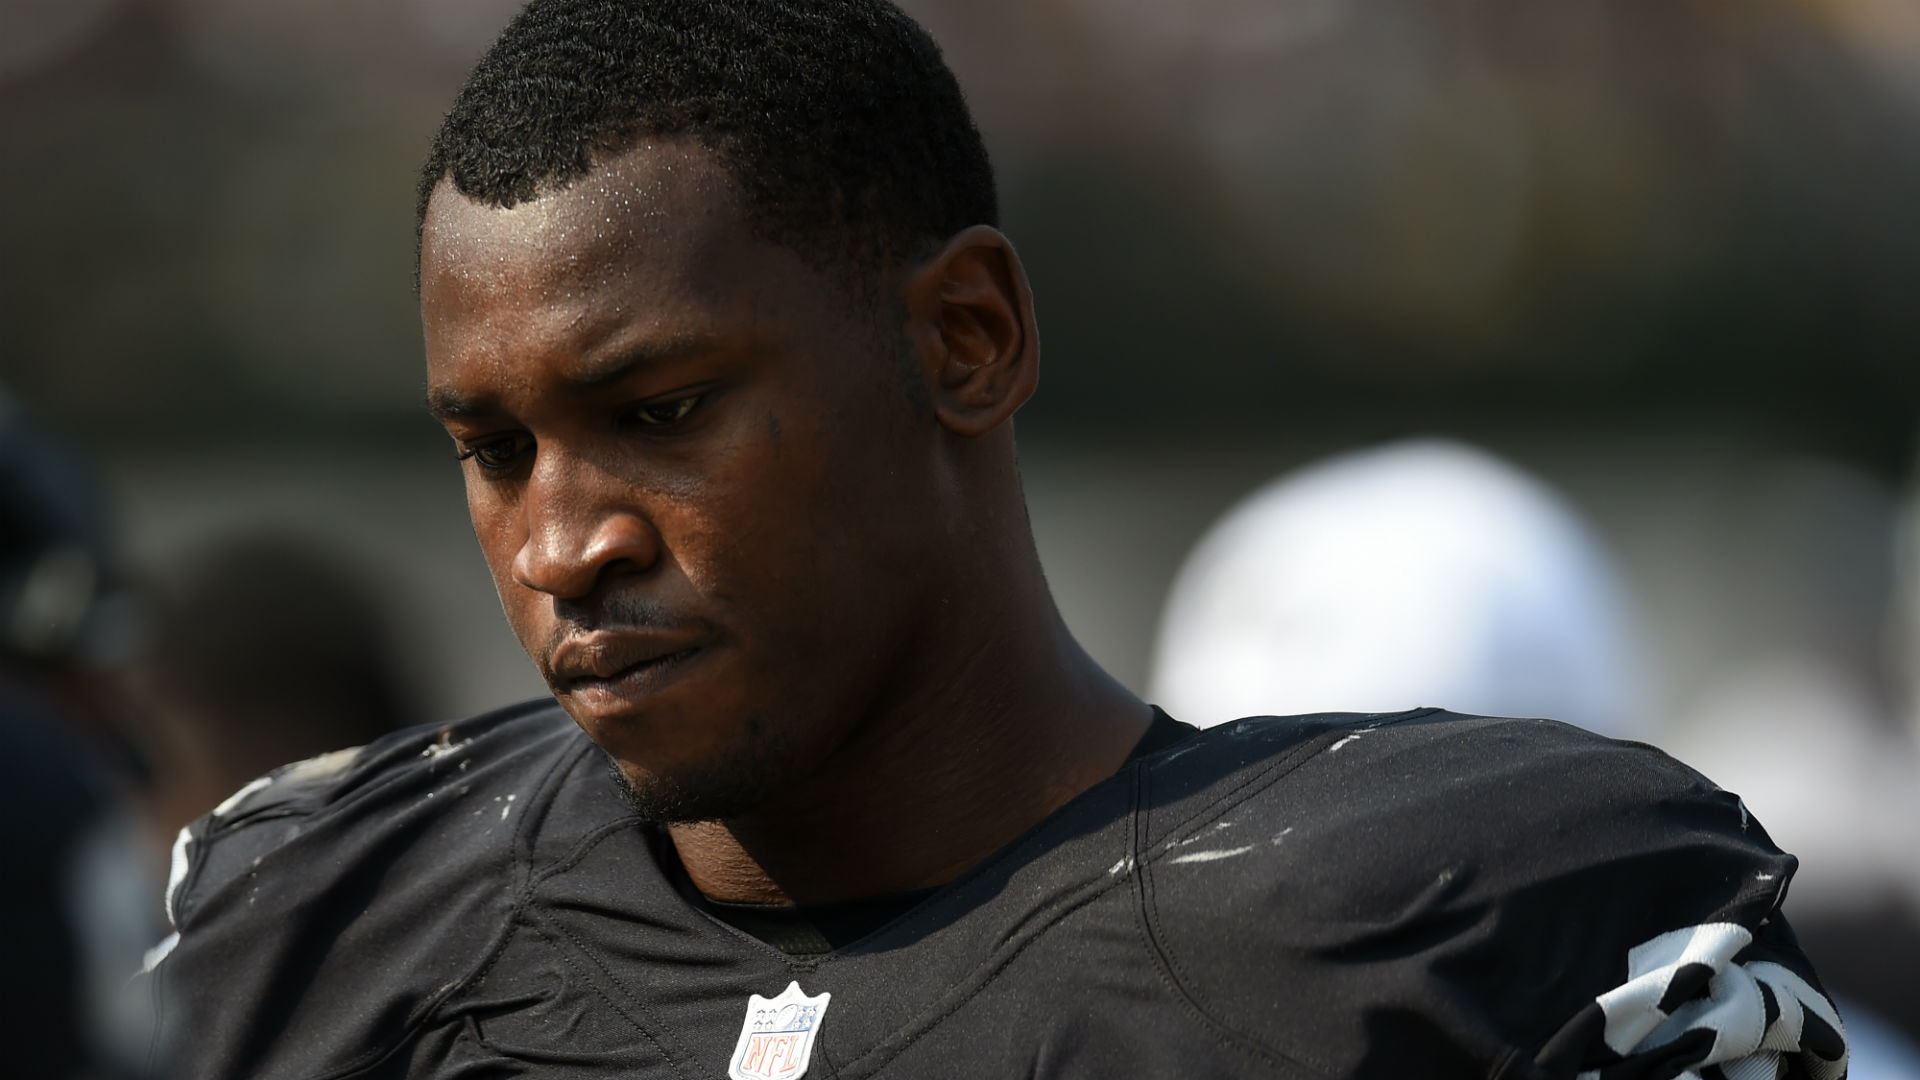 Seahawks' Aldon Smith wanted by police on second-degree battery charge